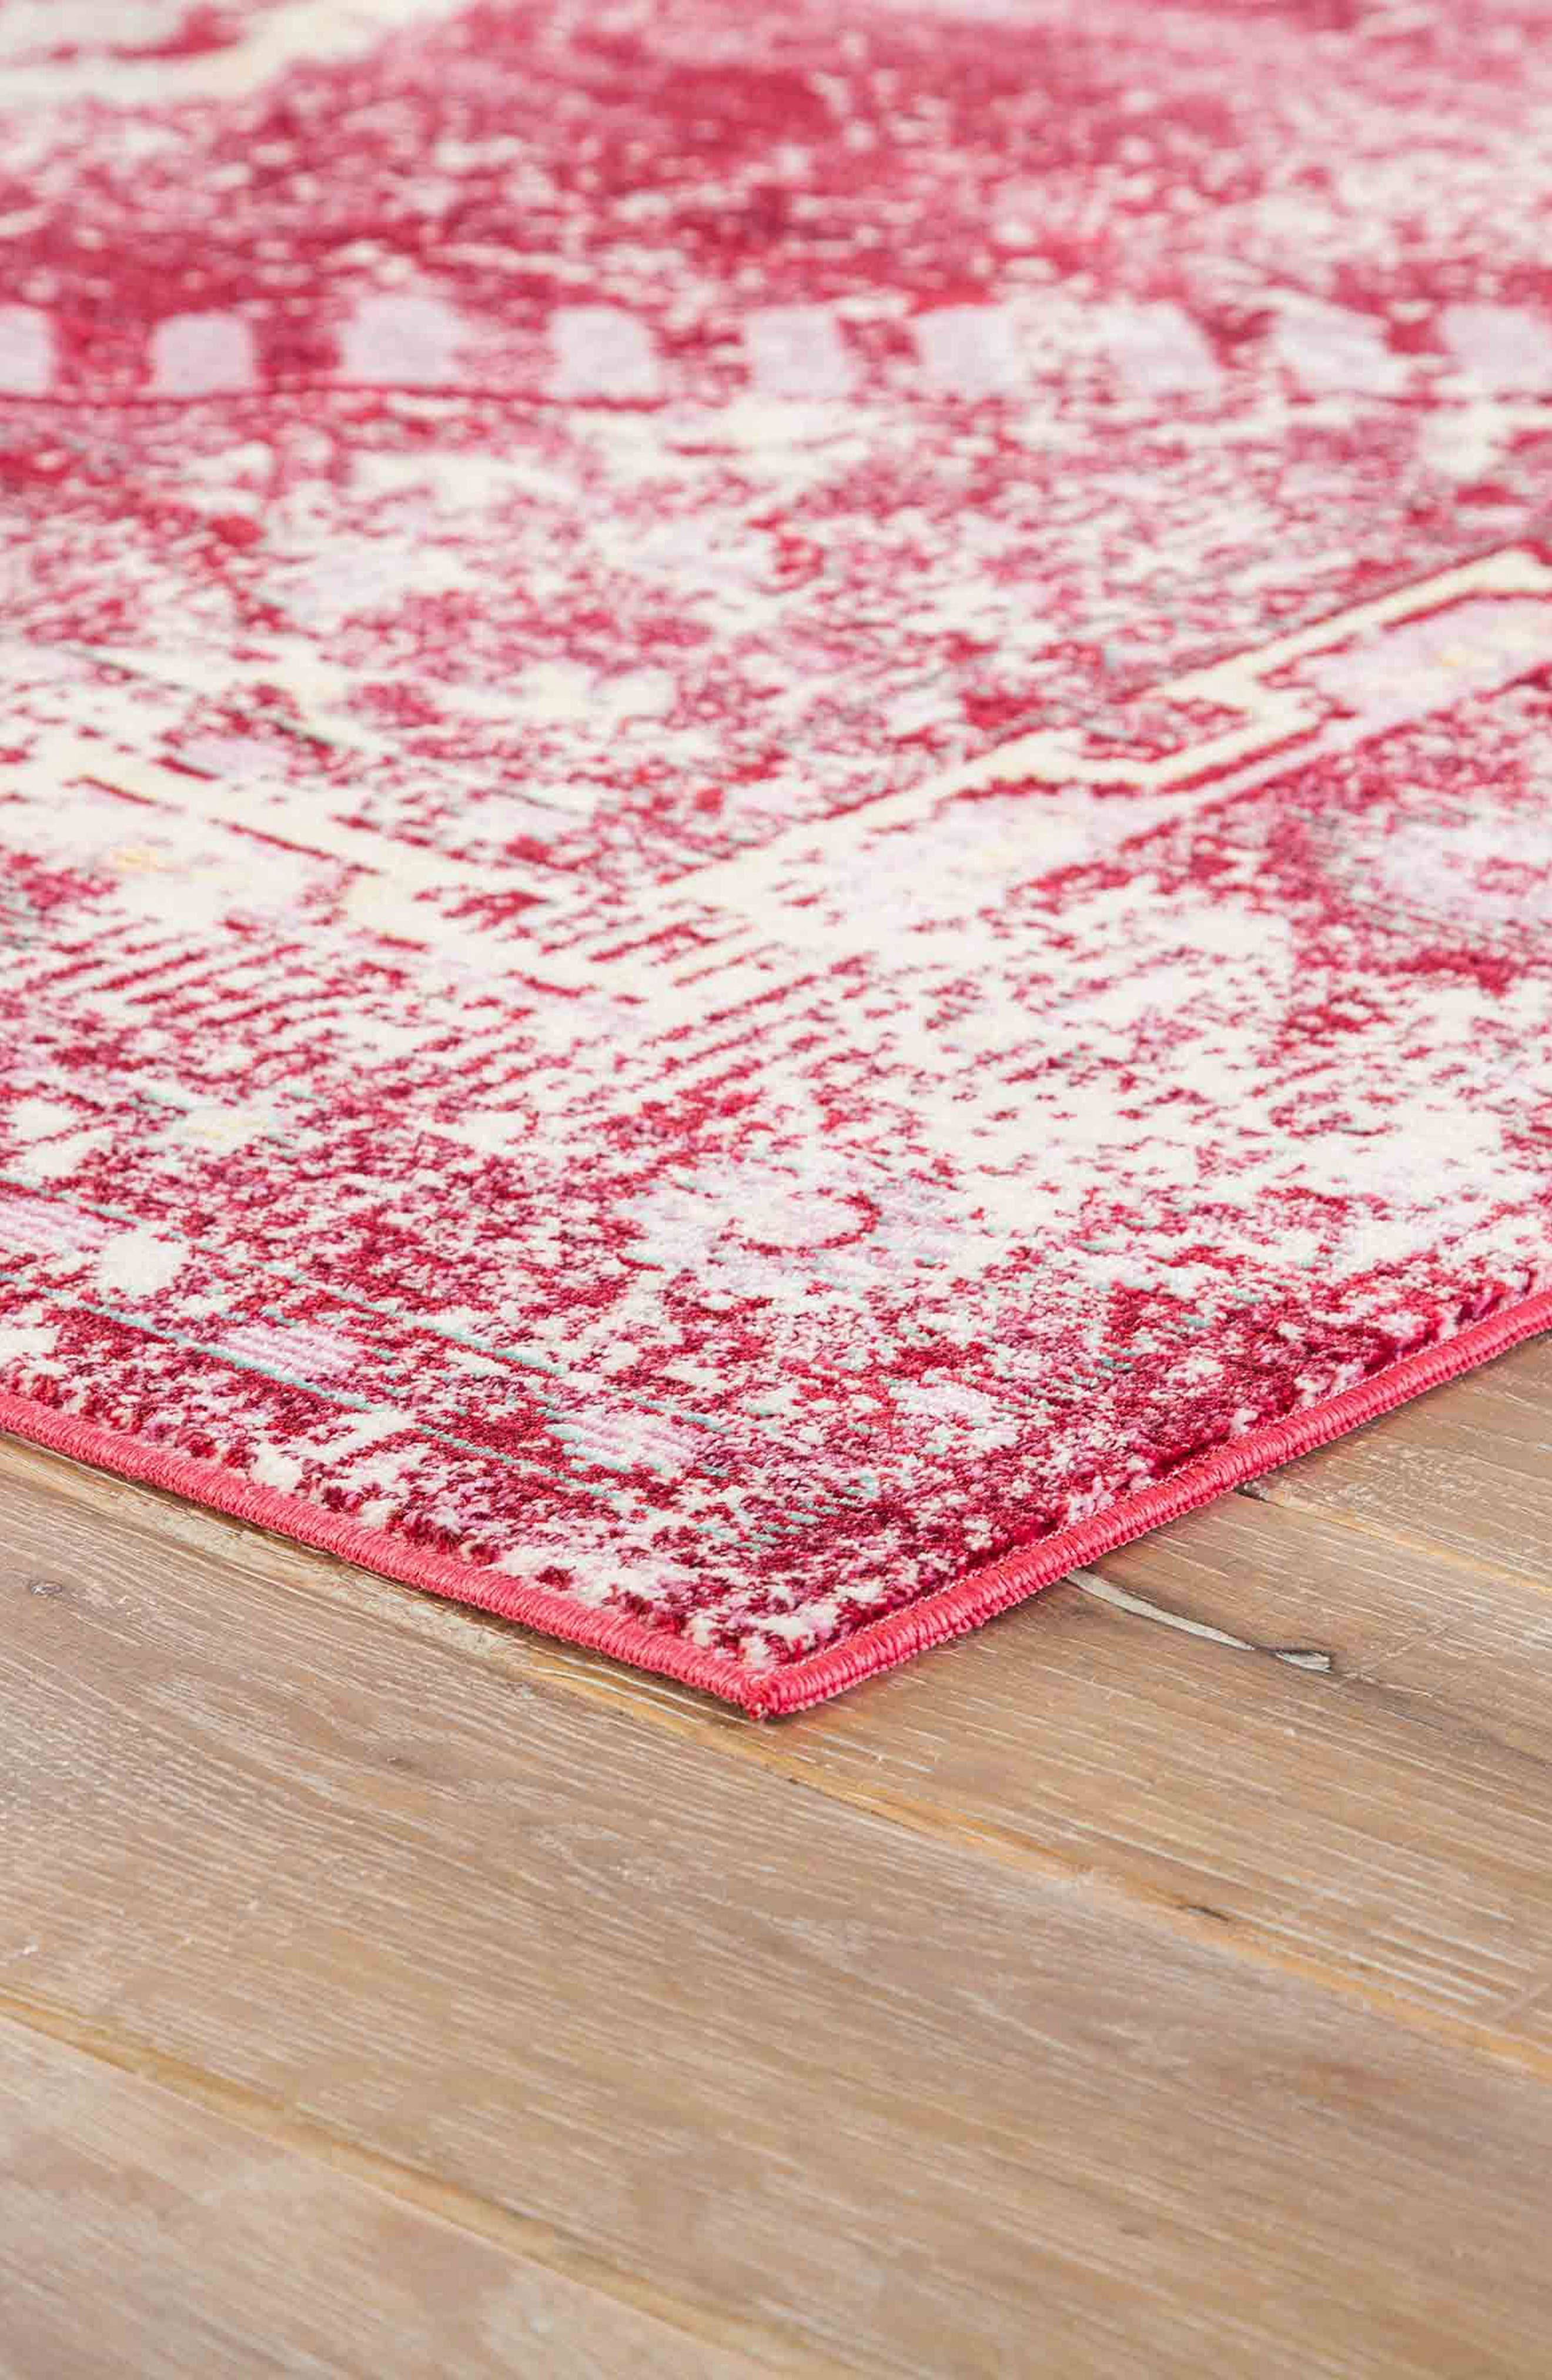 Persia Lux Rug,                             Alternate thumbnail 3, color,                             DISTRESSED RED